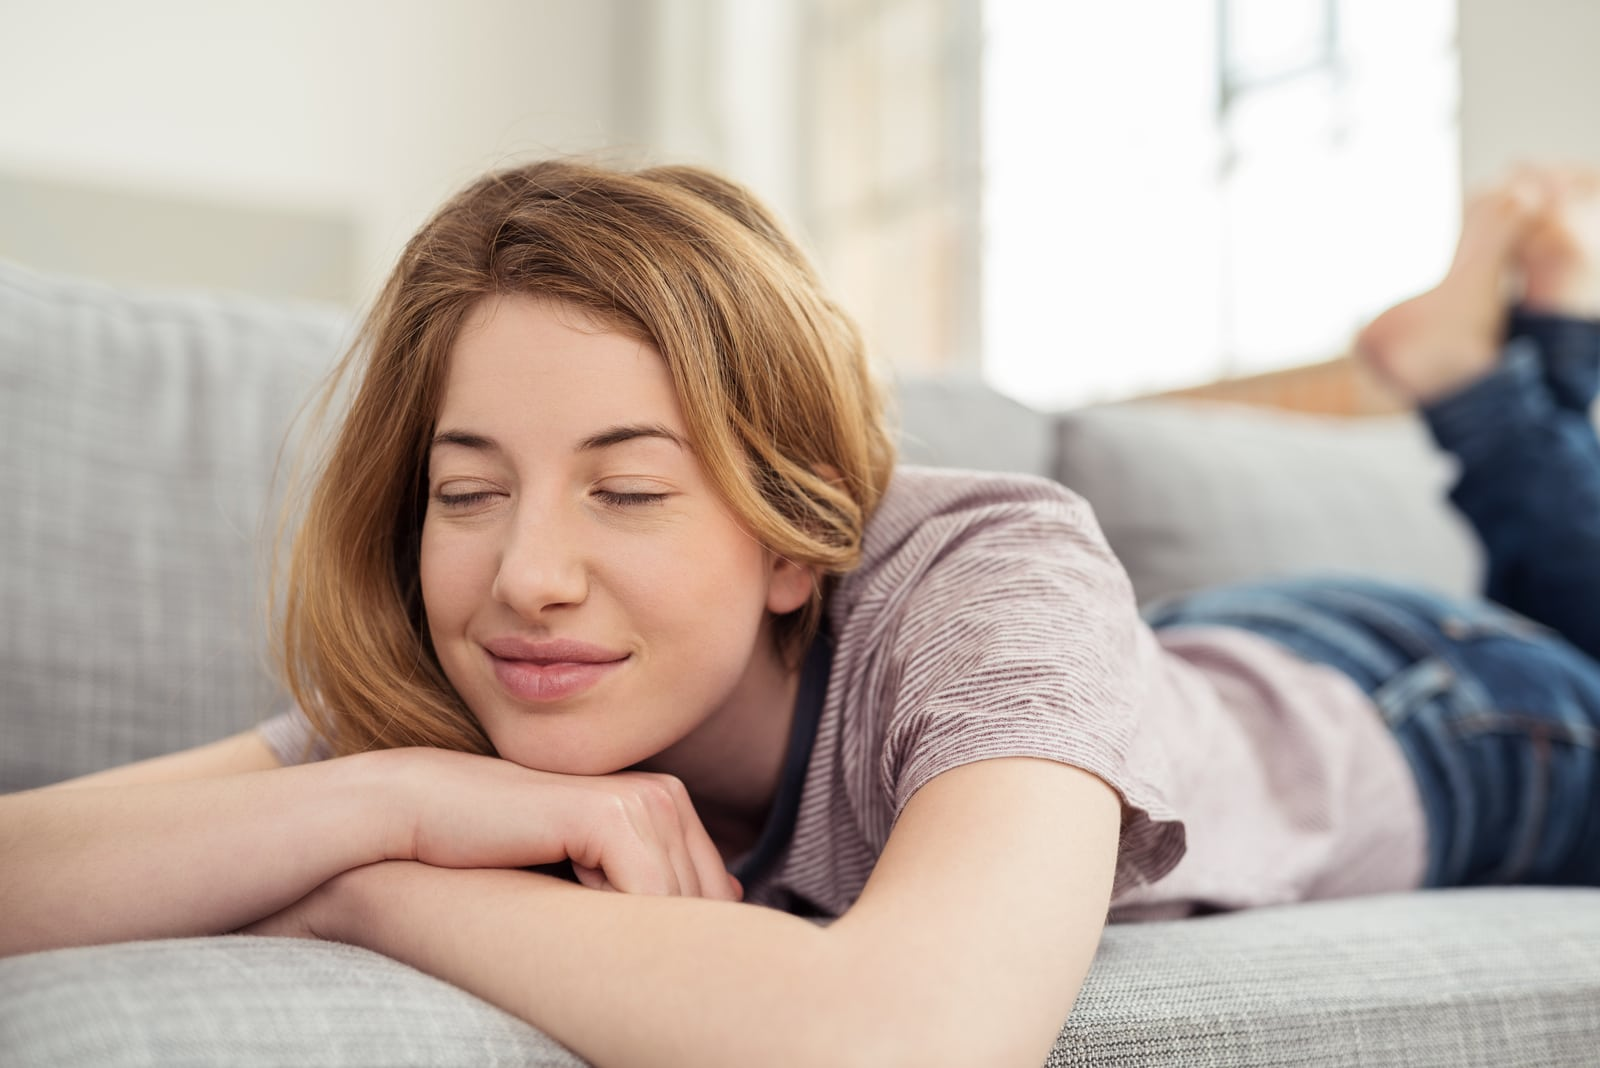 a young woman is lying and enjoying herself on the couch